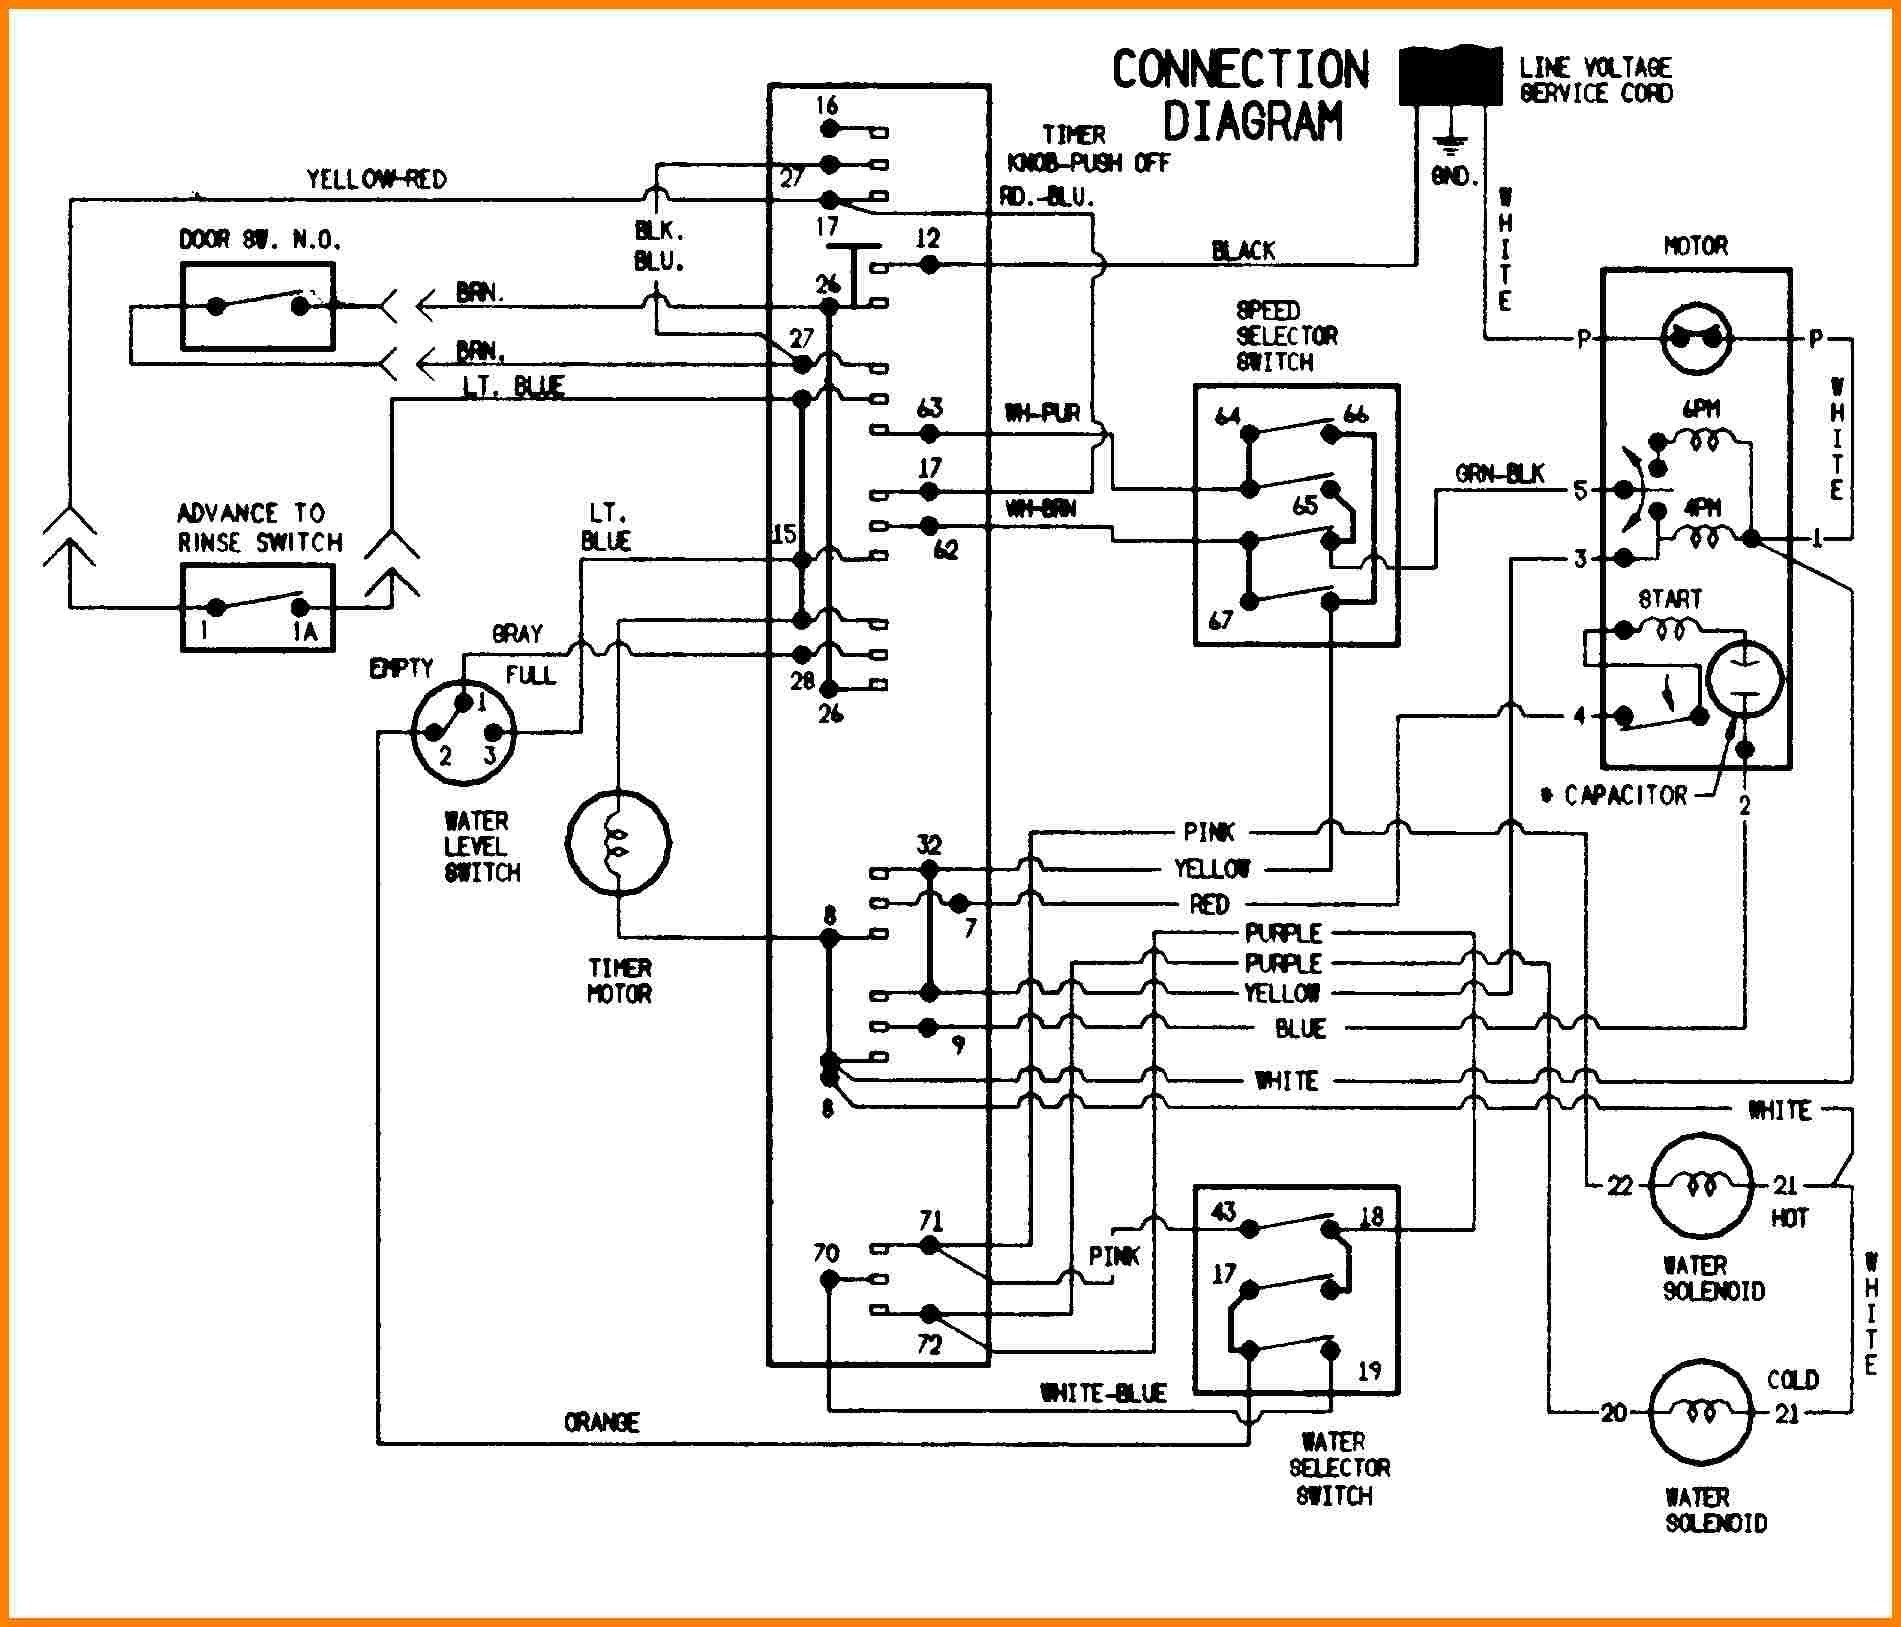 motor washing wiring machine diagramcws3600asi wiring diagram Washing Machine Motor Wire Color Code motor washing wiring machine diagramcws3600asi wiring diagrambeko washing machine wiring diagram wiring diagram motor washing wiring